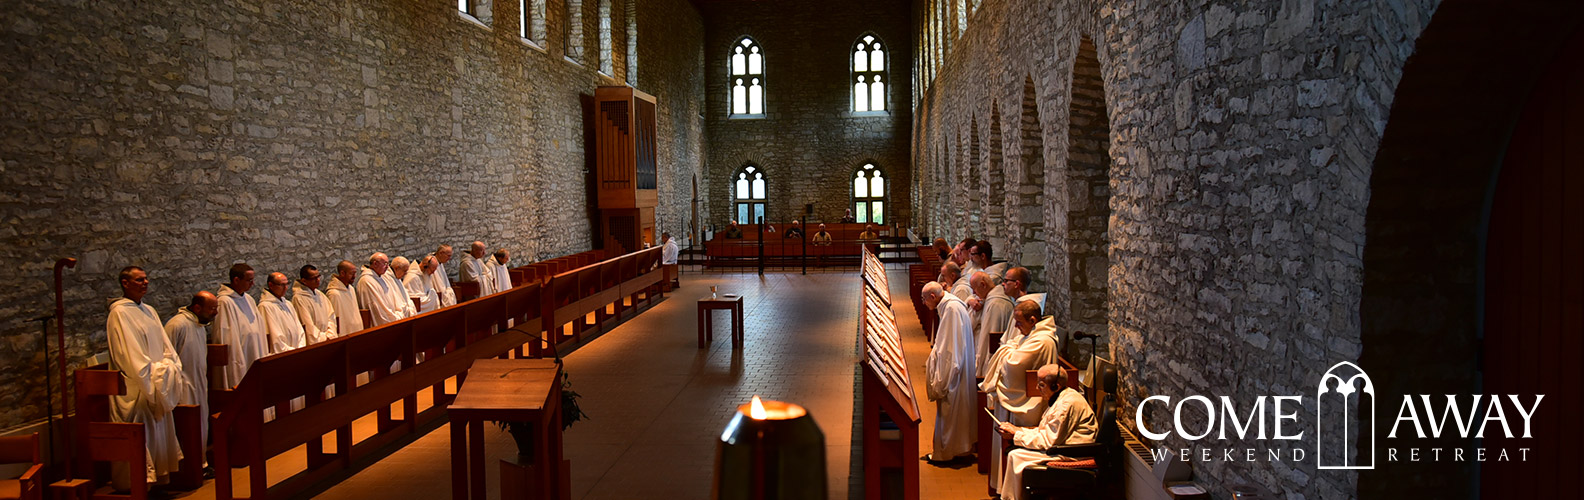 monks in choir in large stone church, text says come away weekend retreat